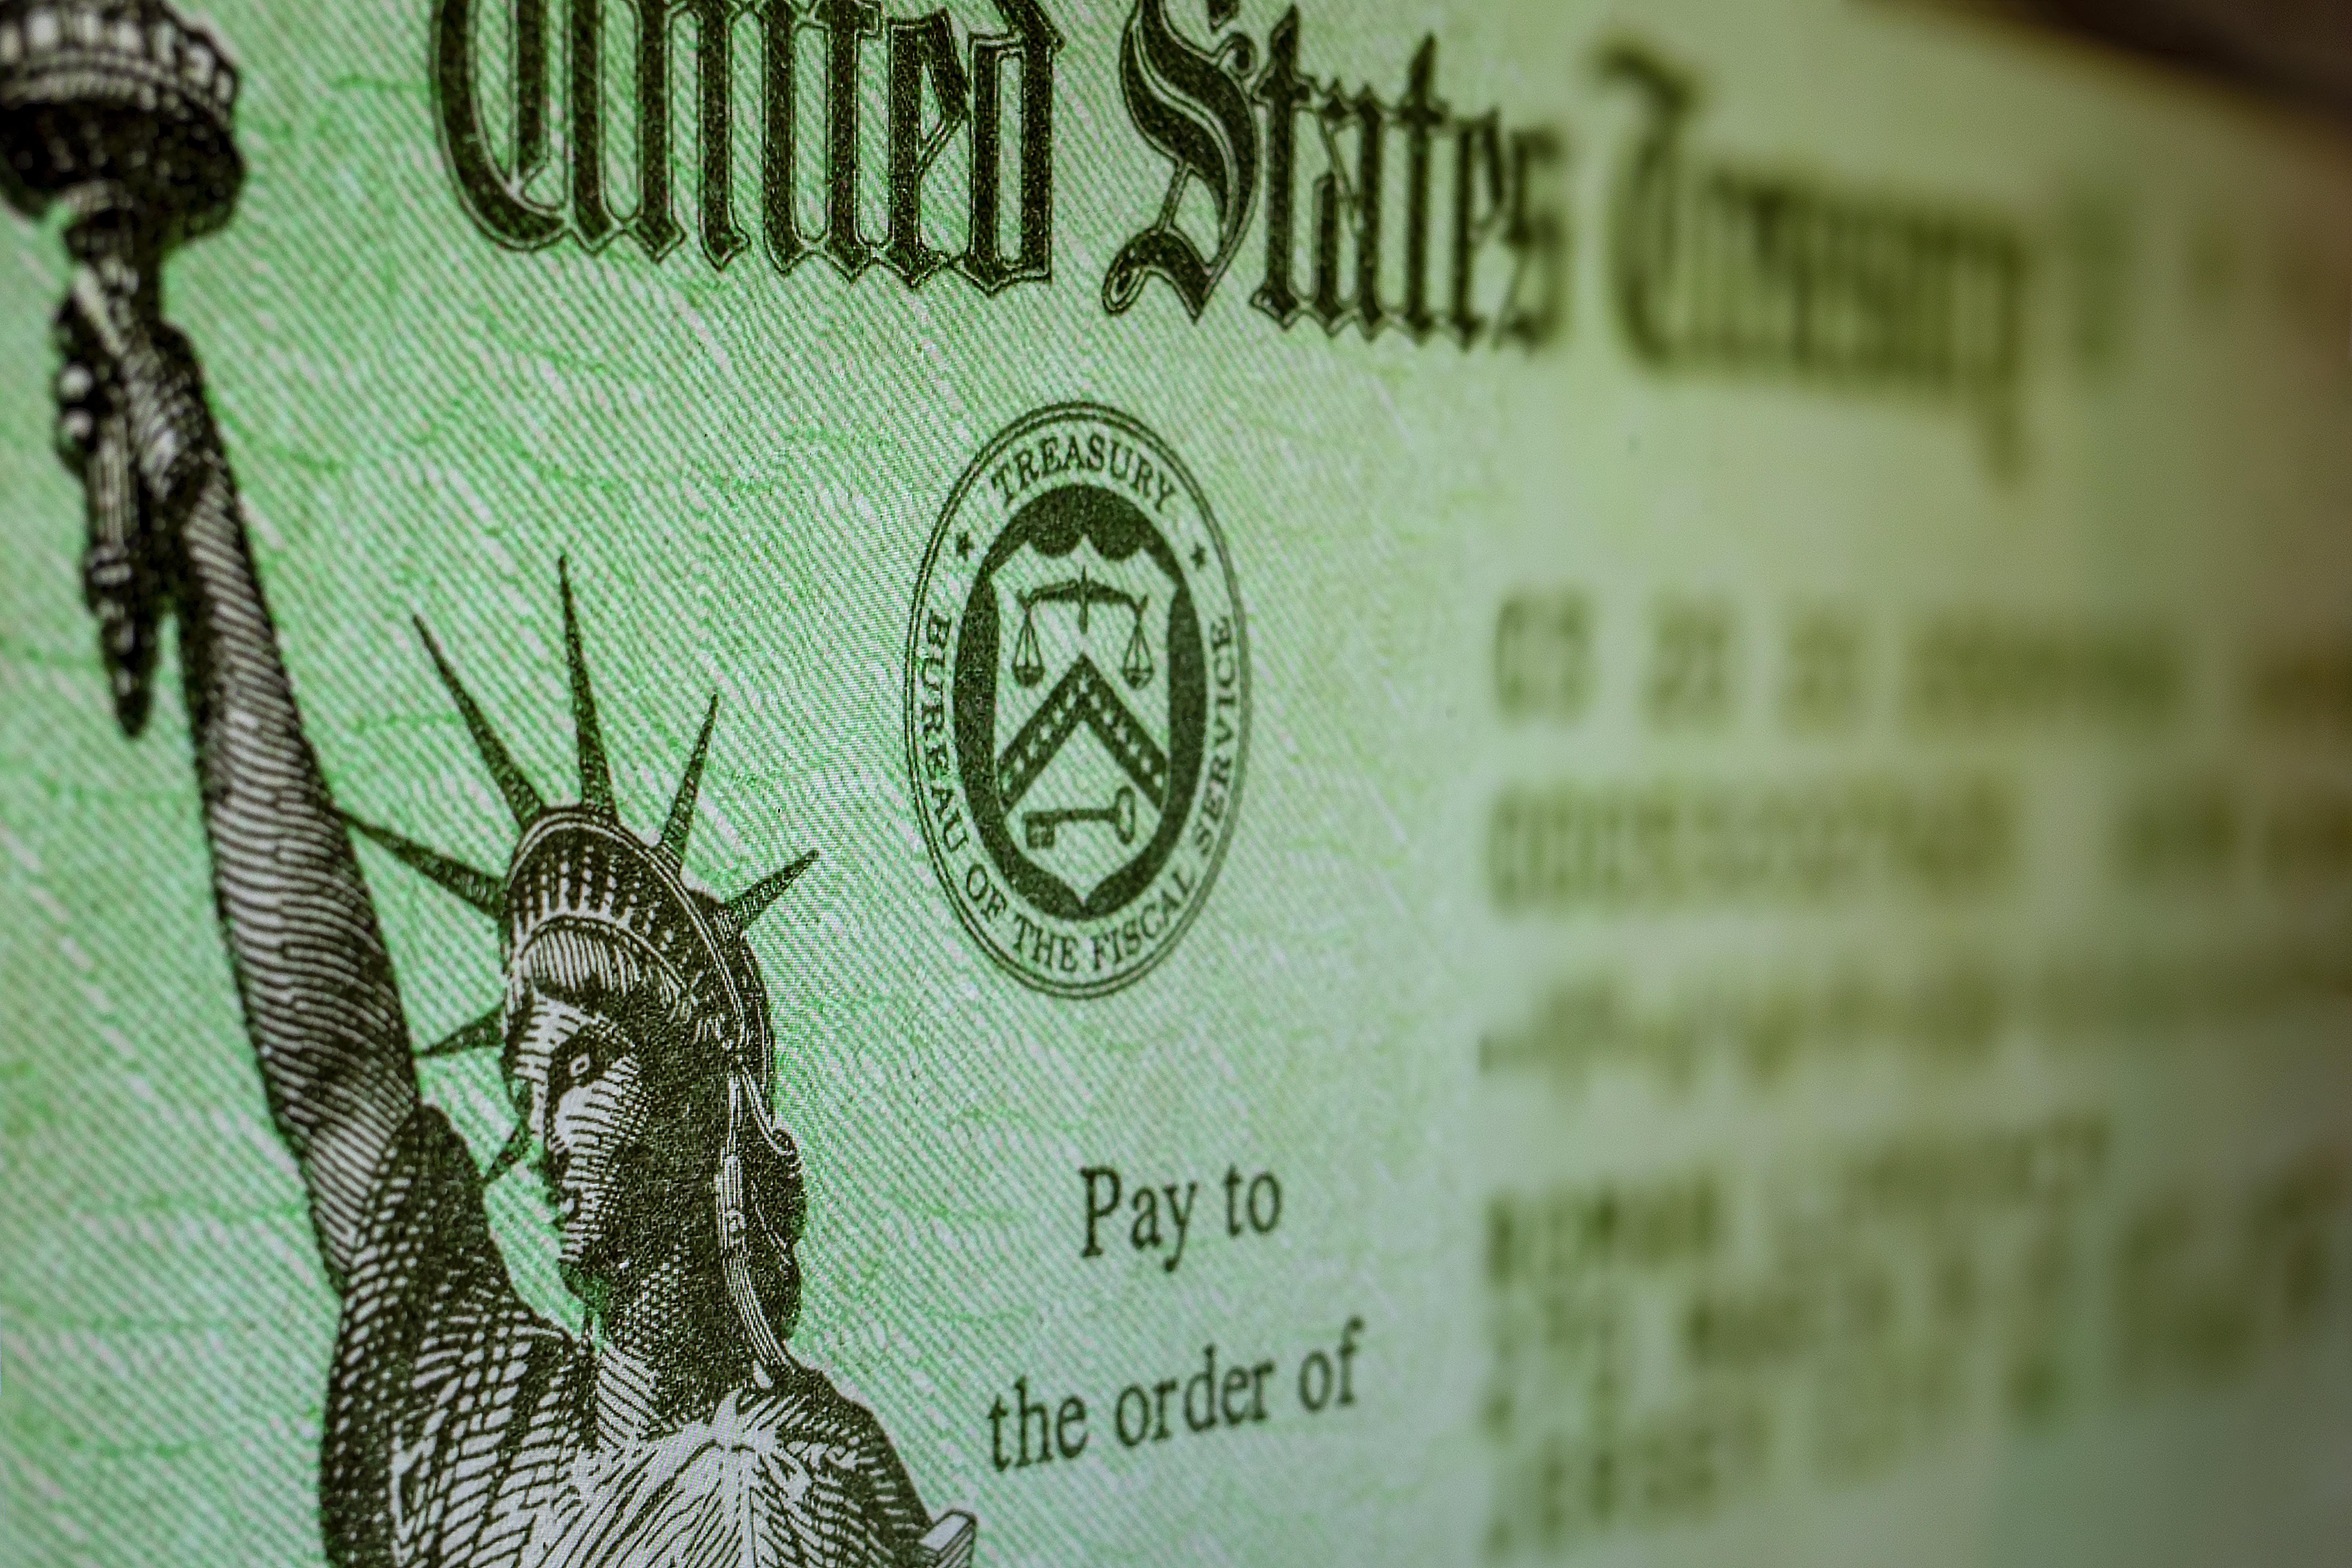 Turbotax H R Block Users Report Issues Getting Third Stimulus Check